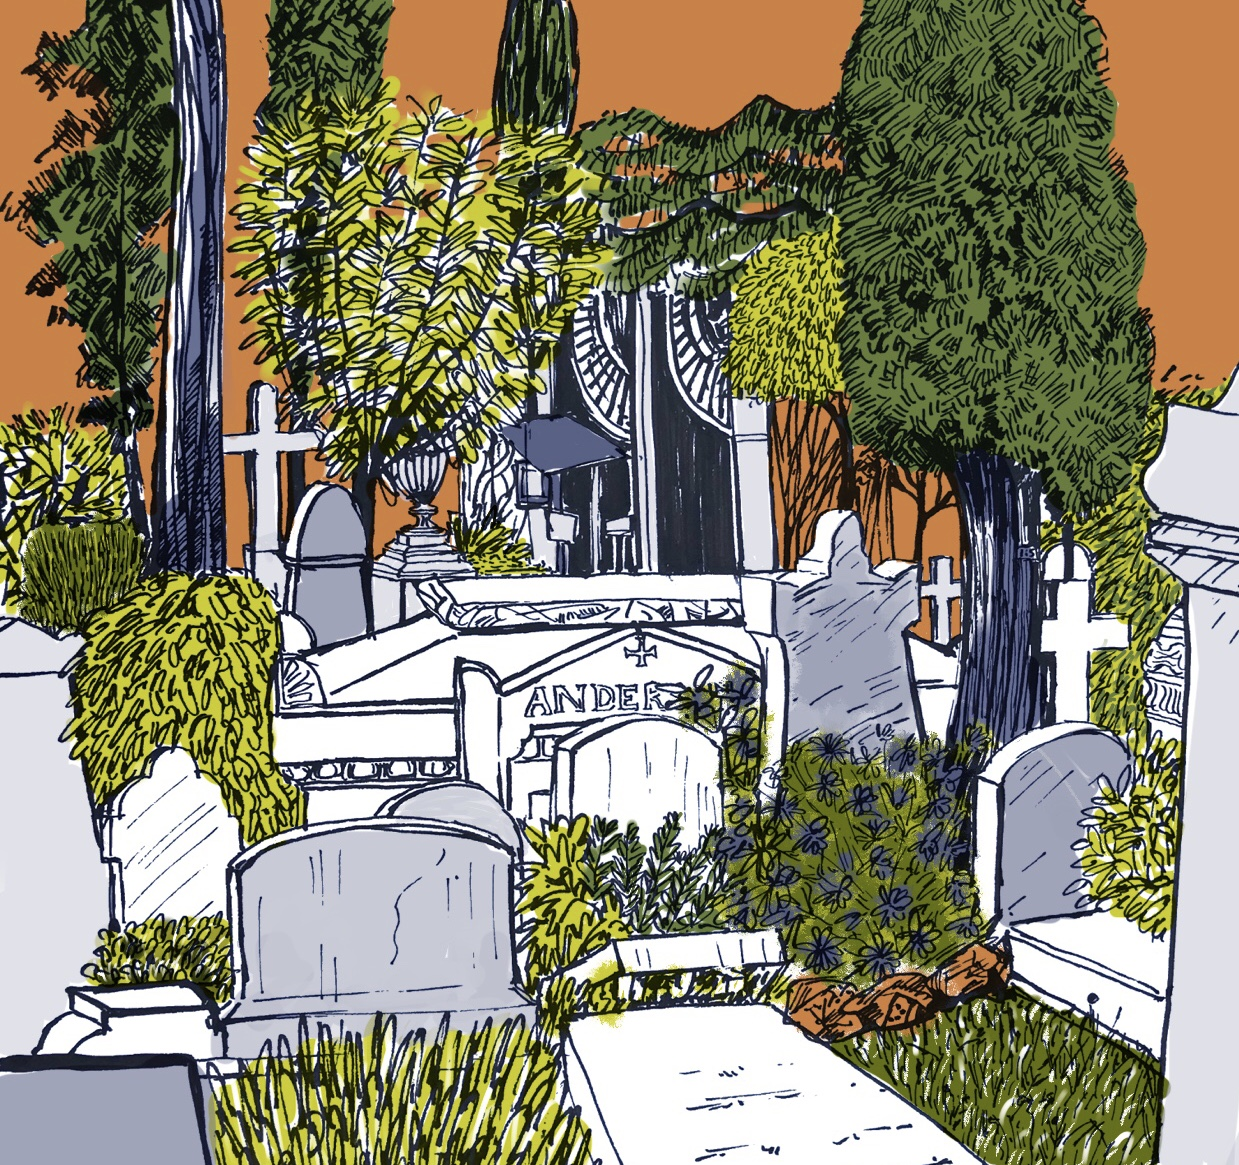 The Anderson Tomb Non Catholic Cemetery of Rome. (Pen and ink and digital colour) Using a palette inspired by John Minton. £45 framed £30 unframed (Edition of five)